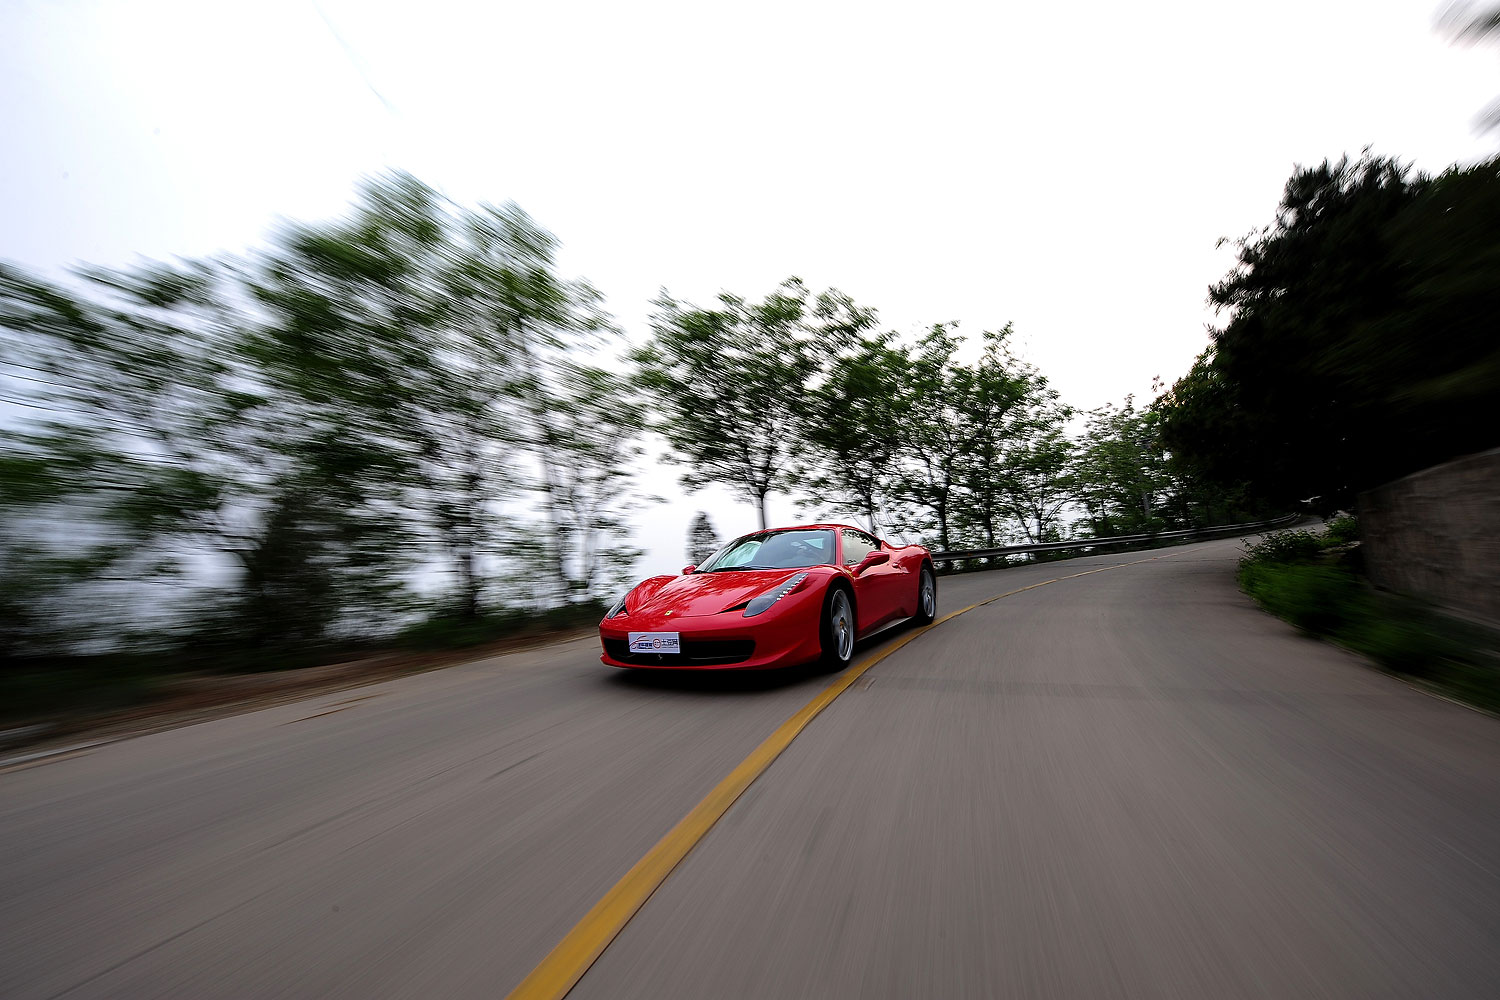 A Ferrari 458 Italia sports car is road tested in Beijing.